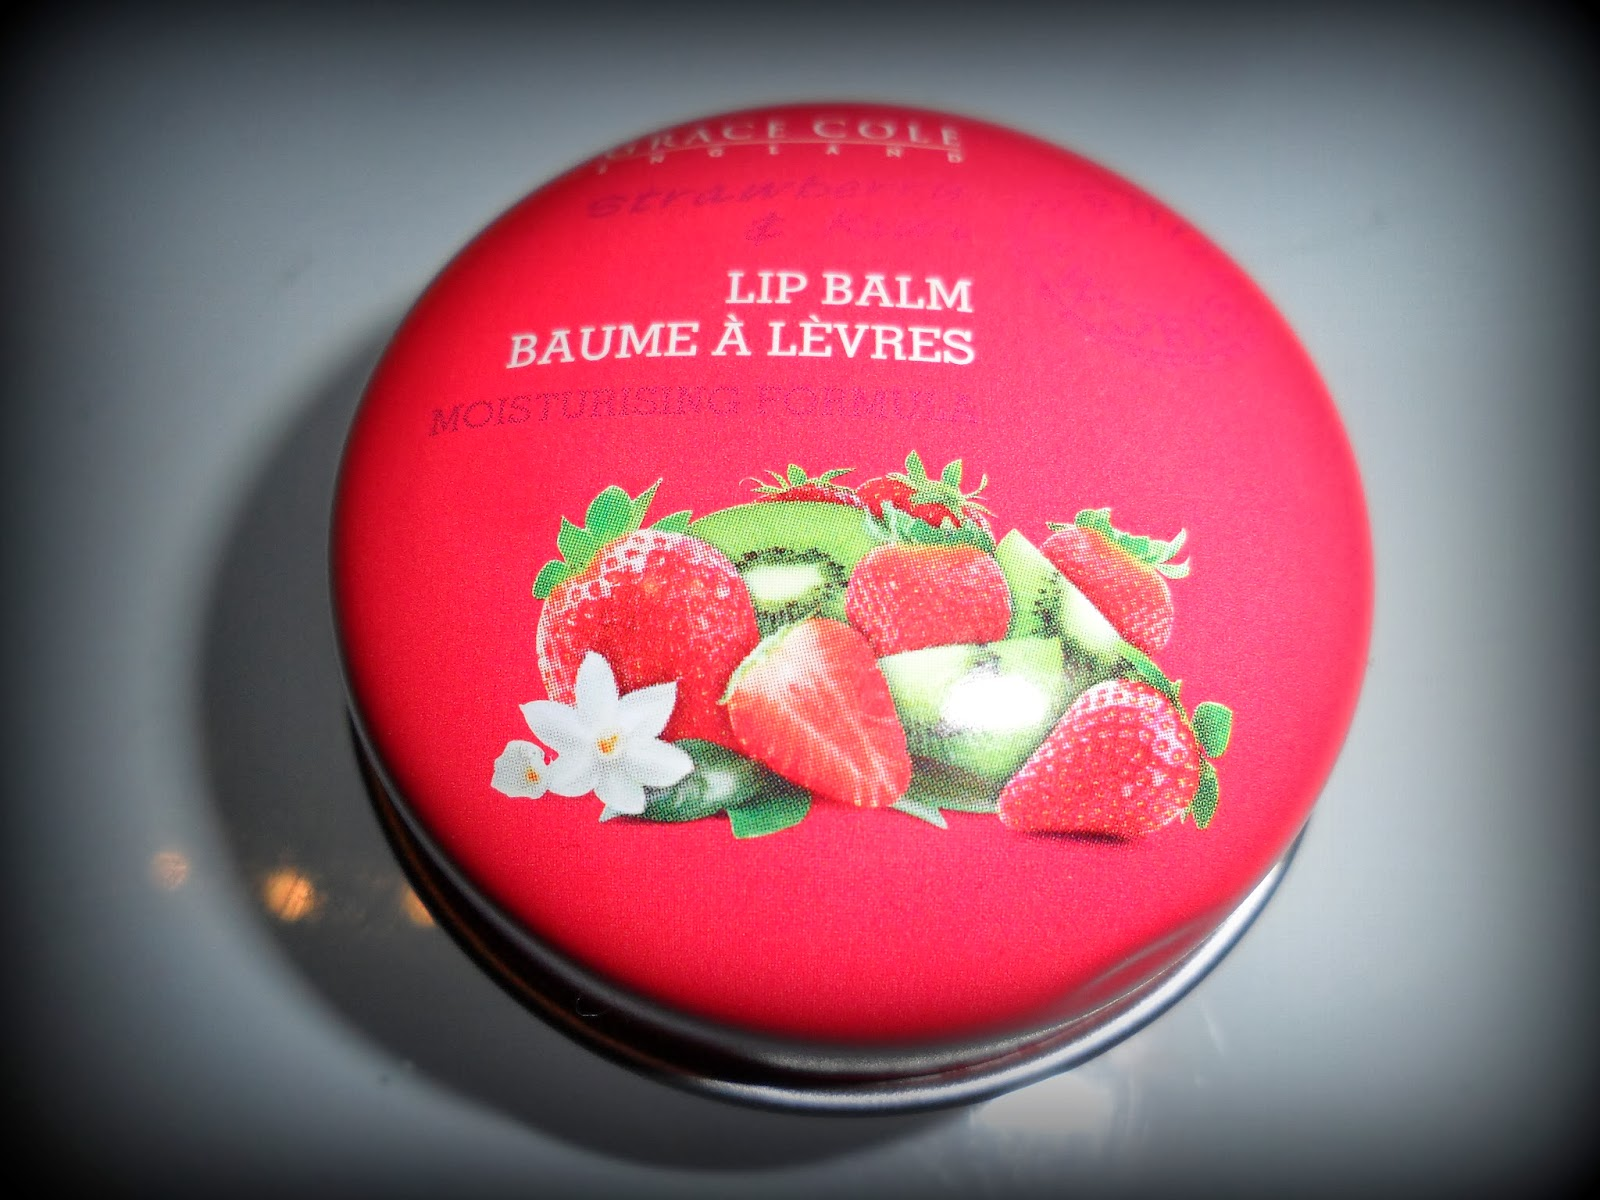 Grace Cole Lip Balm, Lip Balm, Winter Beauty Products, British Beauty Brands, Strawberry & Kiwi Lip Balm